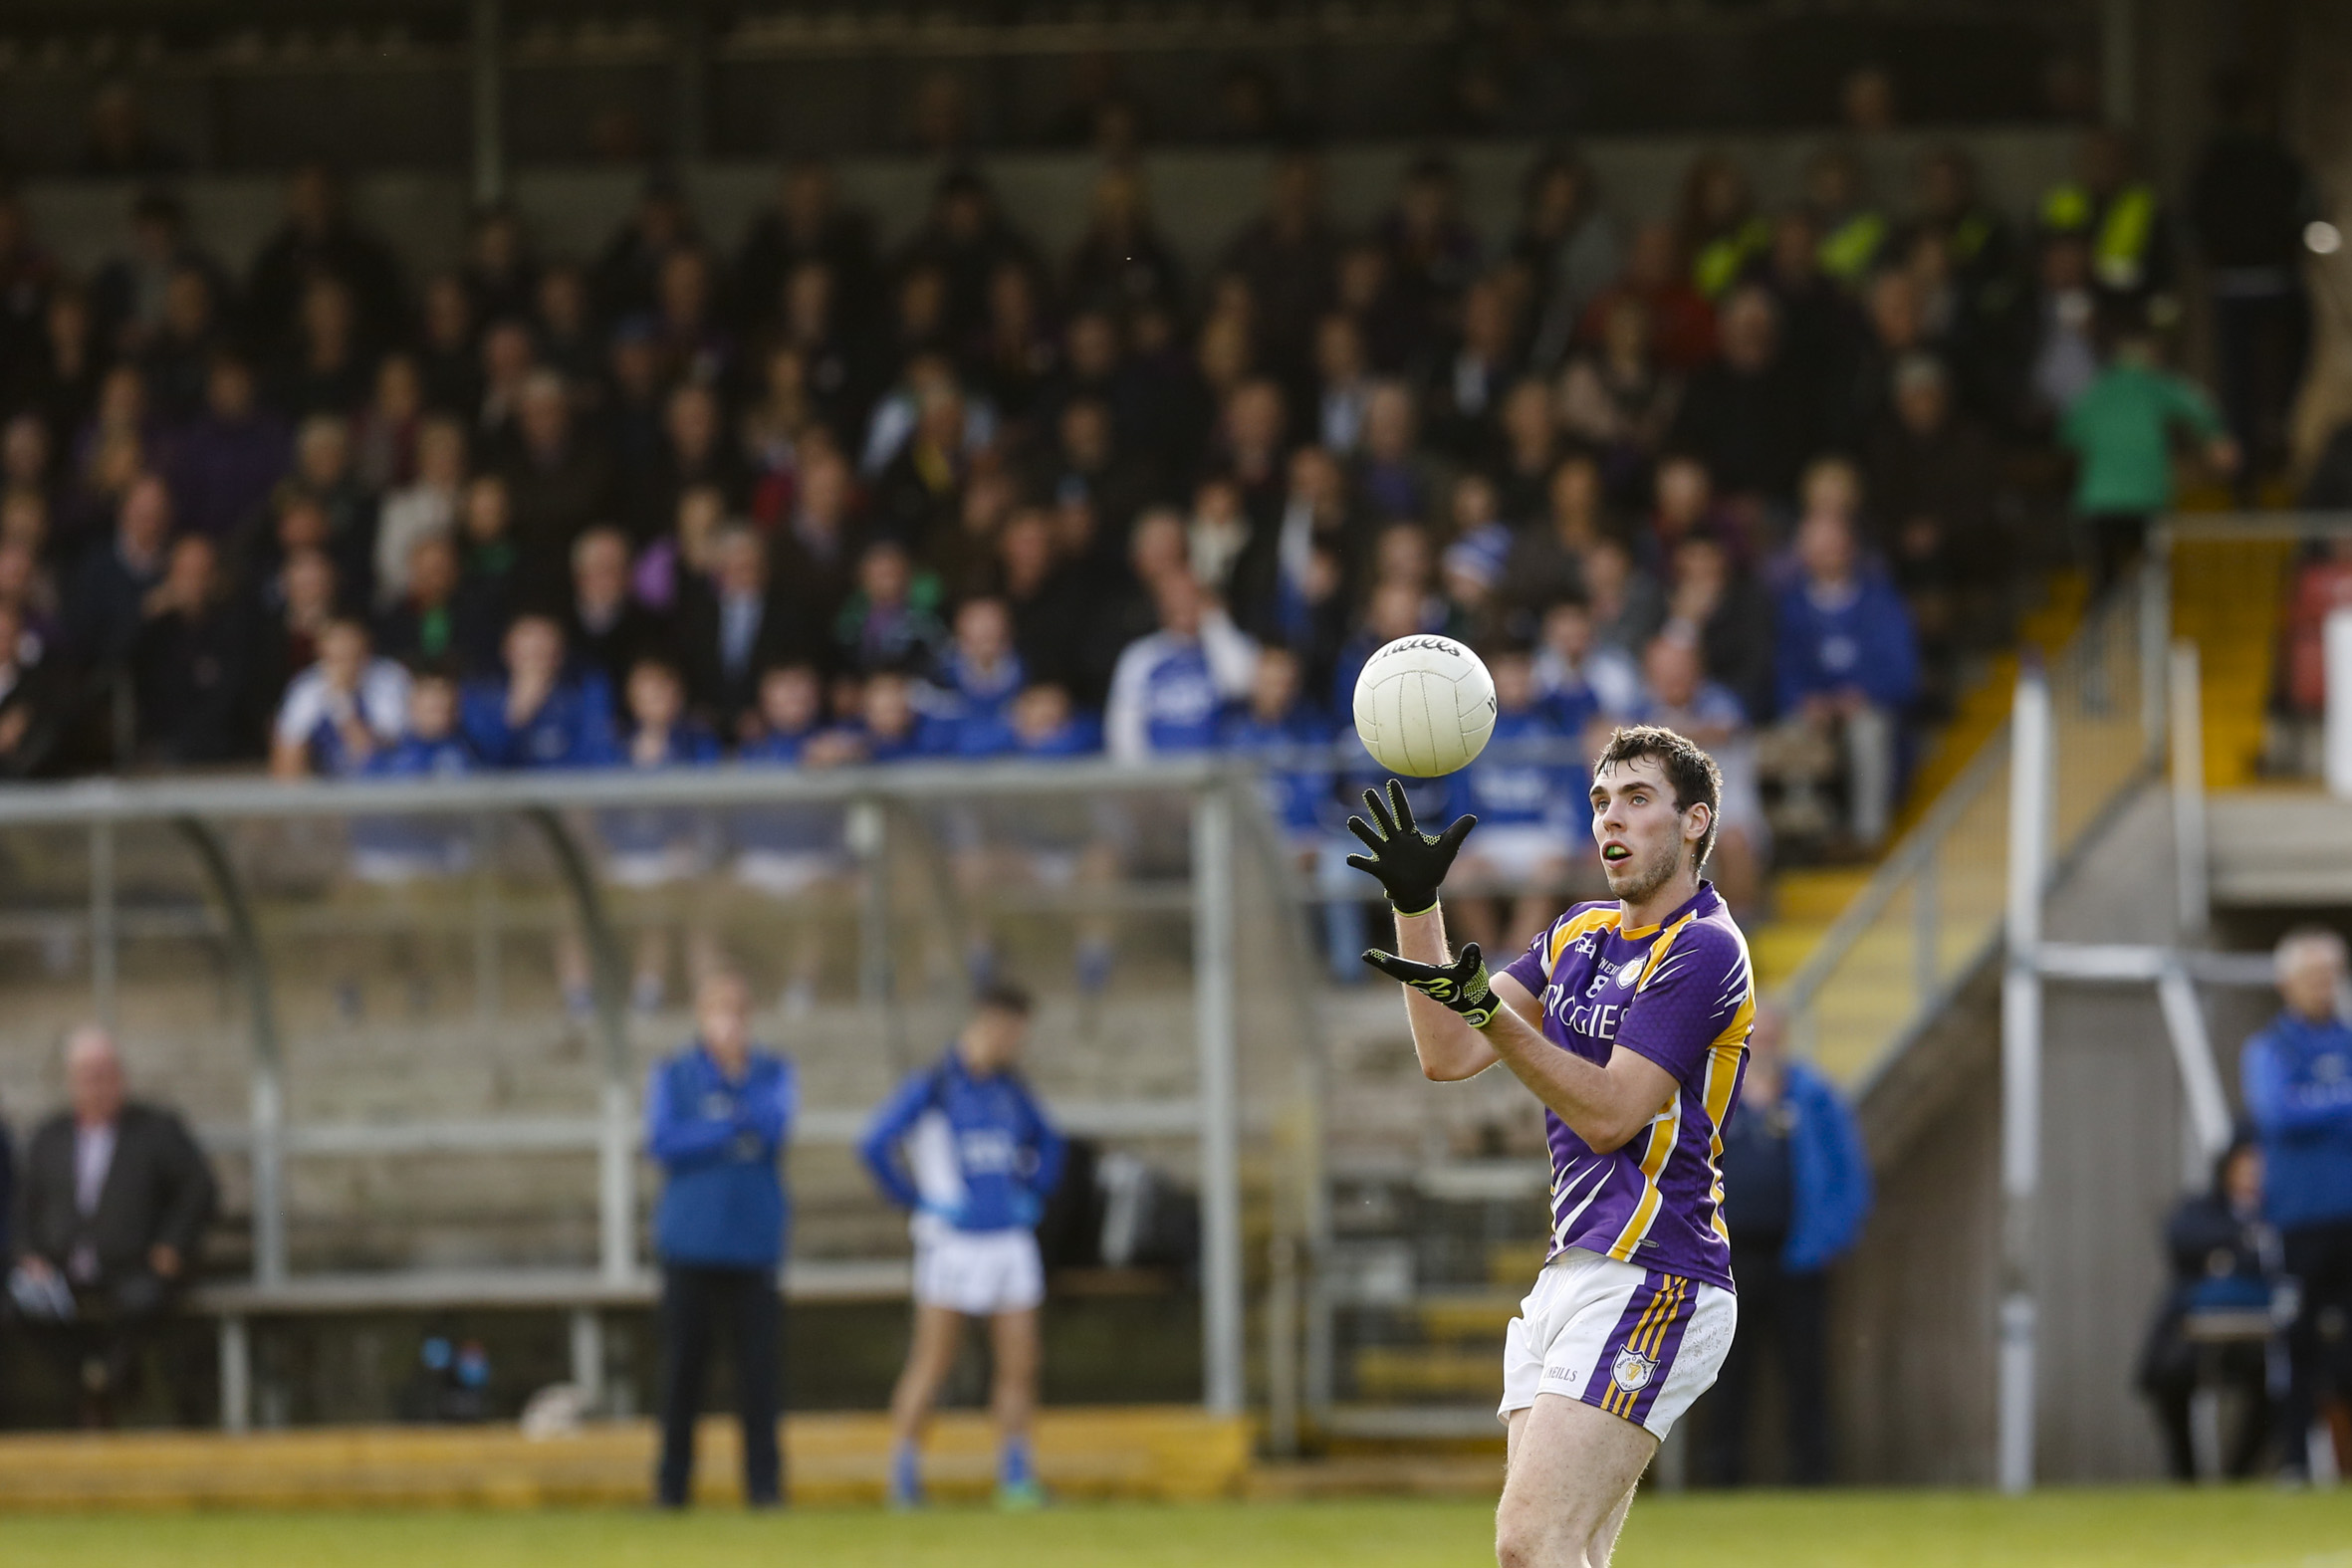 Ryan Jones will be a key player for Derrygonnelly when they take on Cavan Gaels on Sunday in Clones.